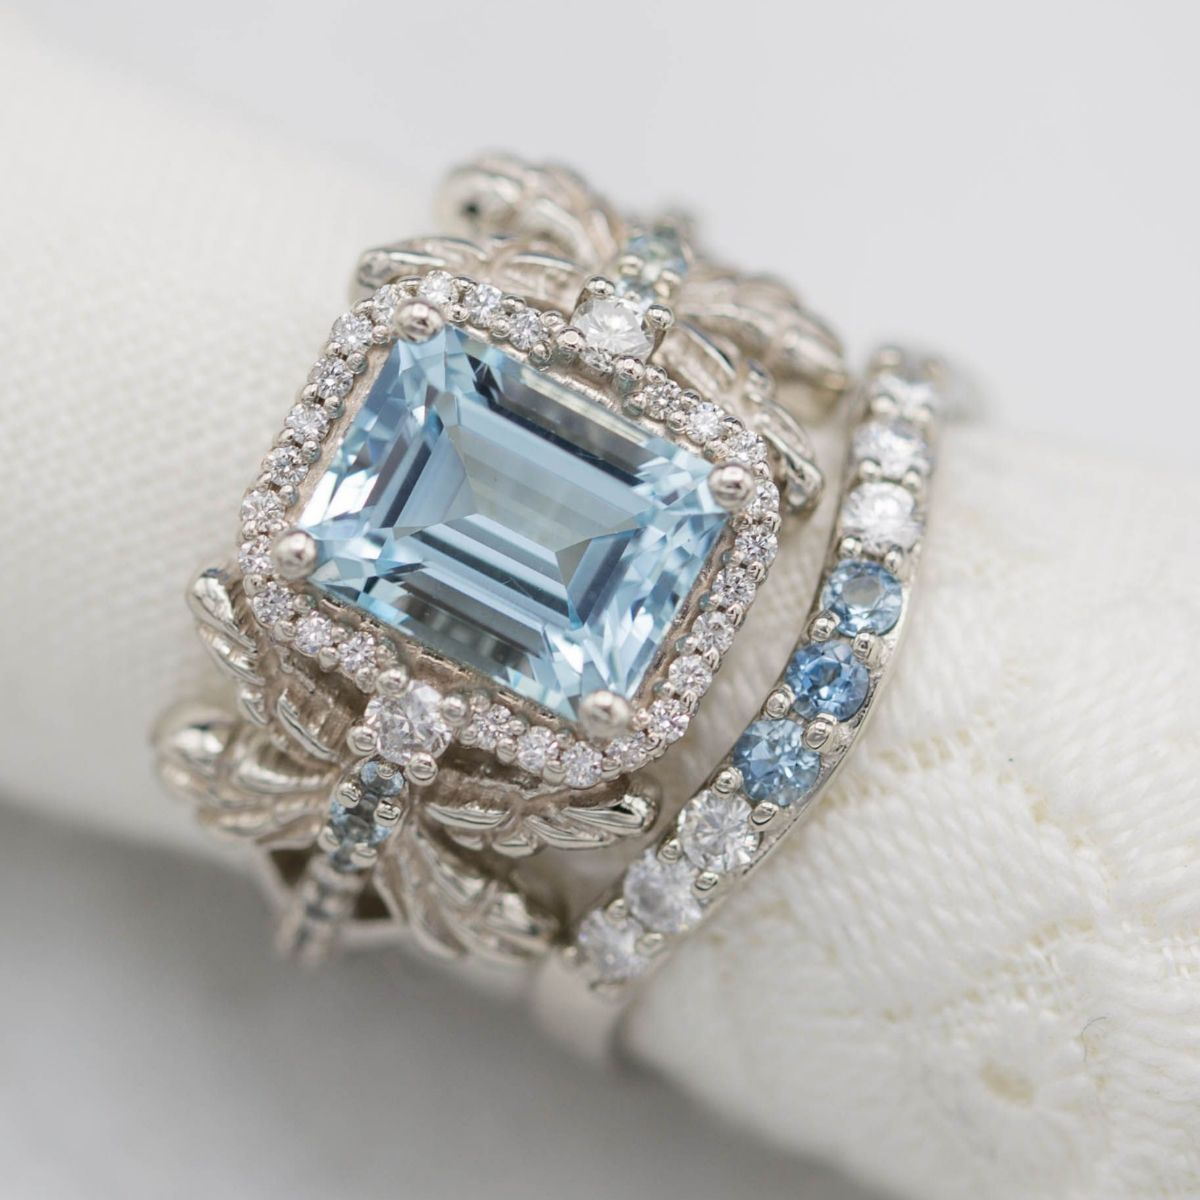 aquamarine size cool sky wedding fjyestl promise diamonds light engagement blue gold natural diamond in green white with rings ring